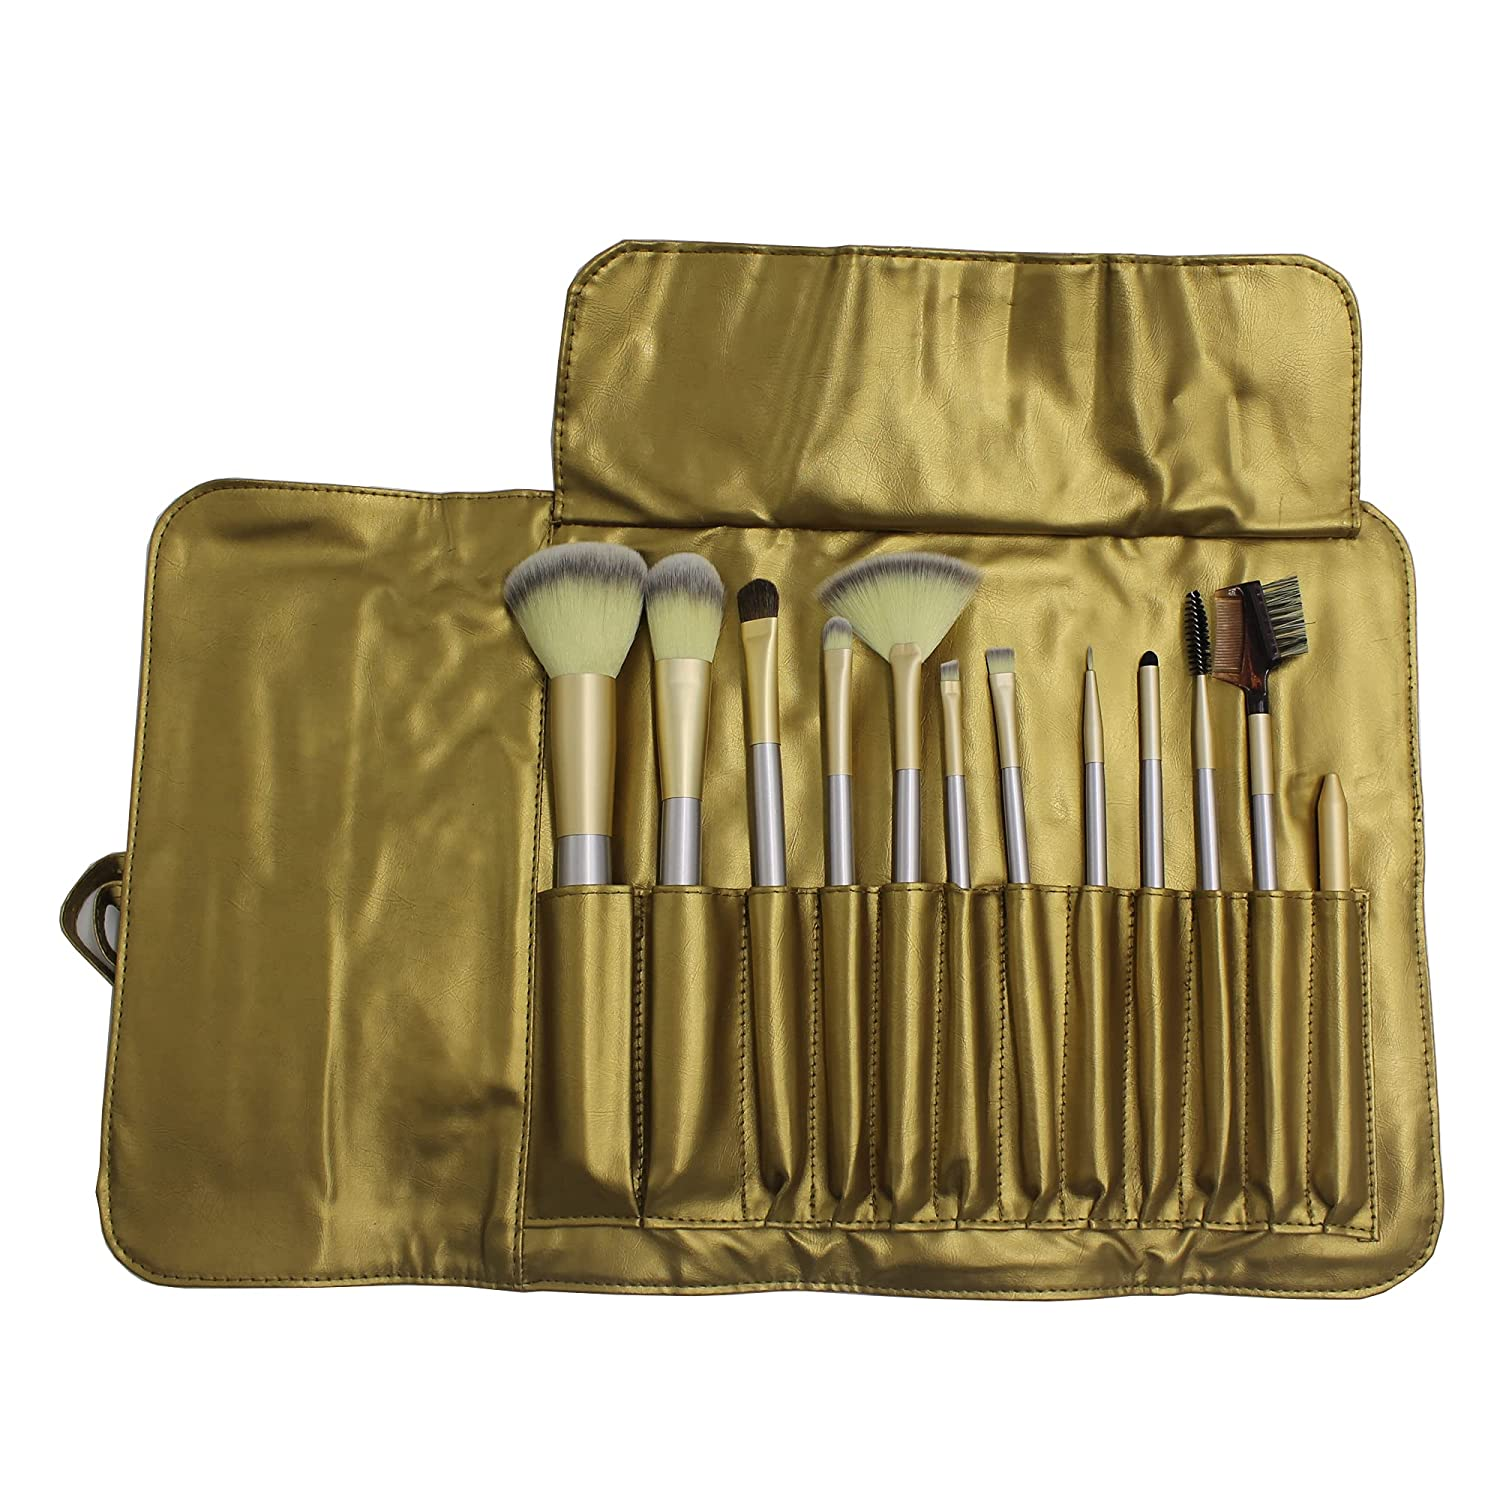 Make-up kit 97520 OFFicial store SPL 40% OFF Cheap Sale